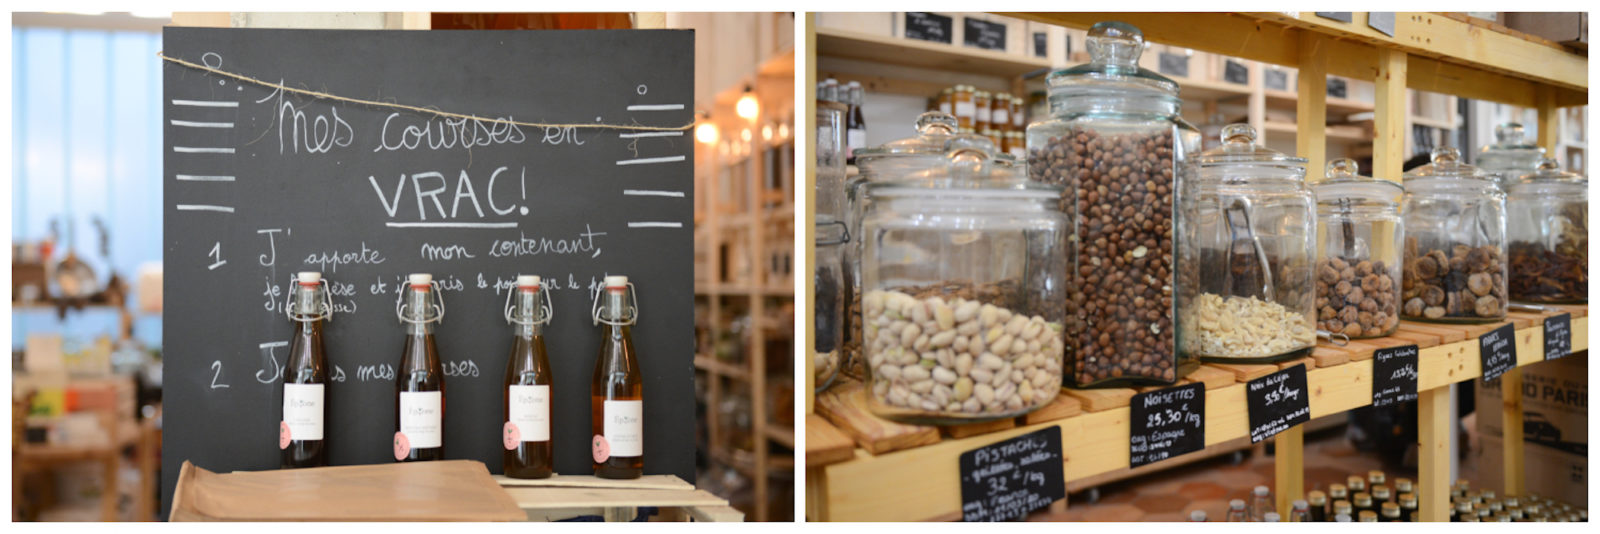 Buy wine in bulk in Paris at Welcome Bio grocery store (left), which also sells groceries in zero-waste packaging (right), and has its own organic restaurant.